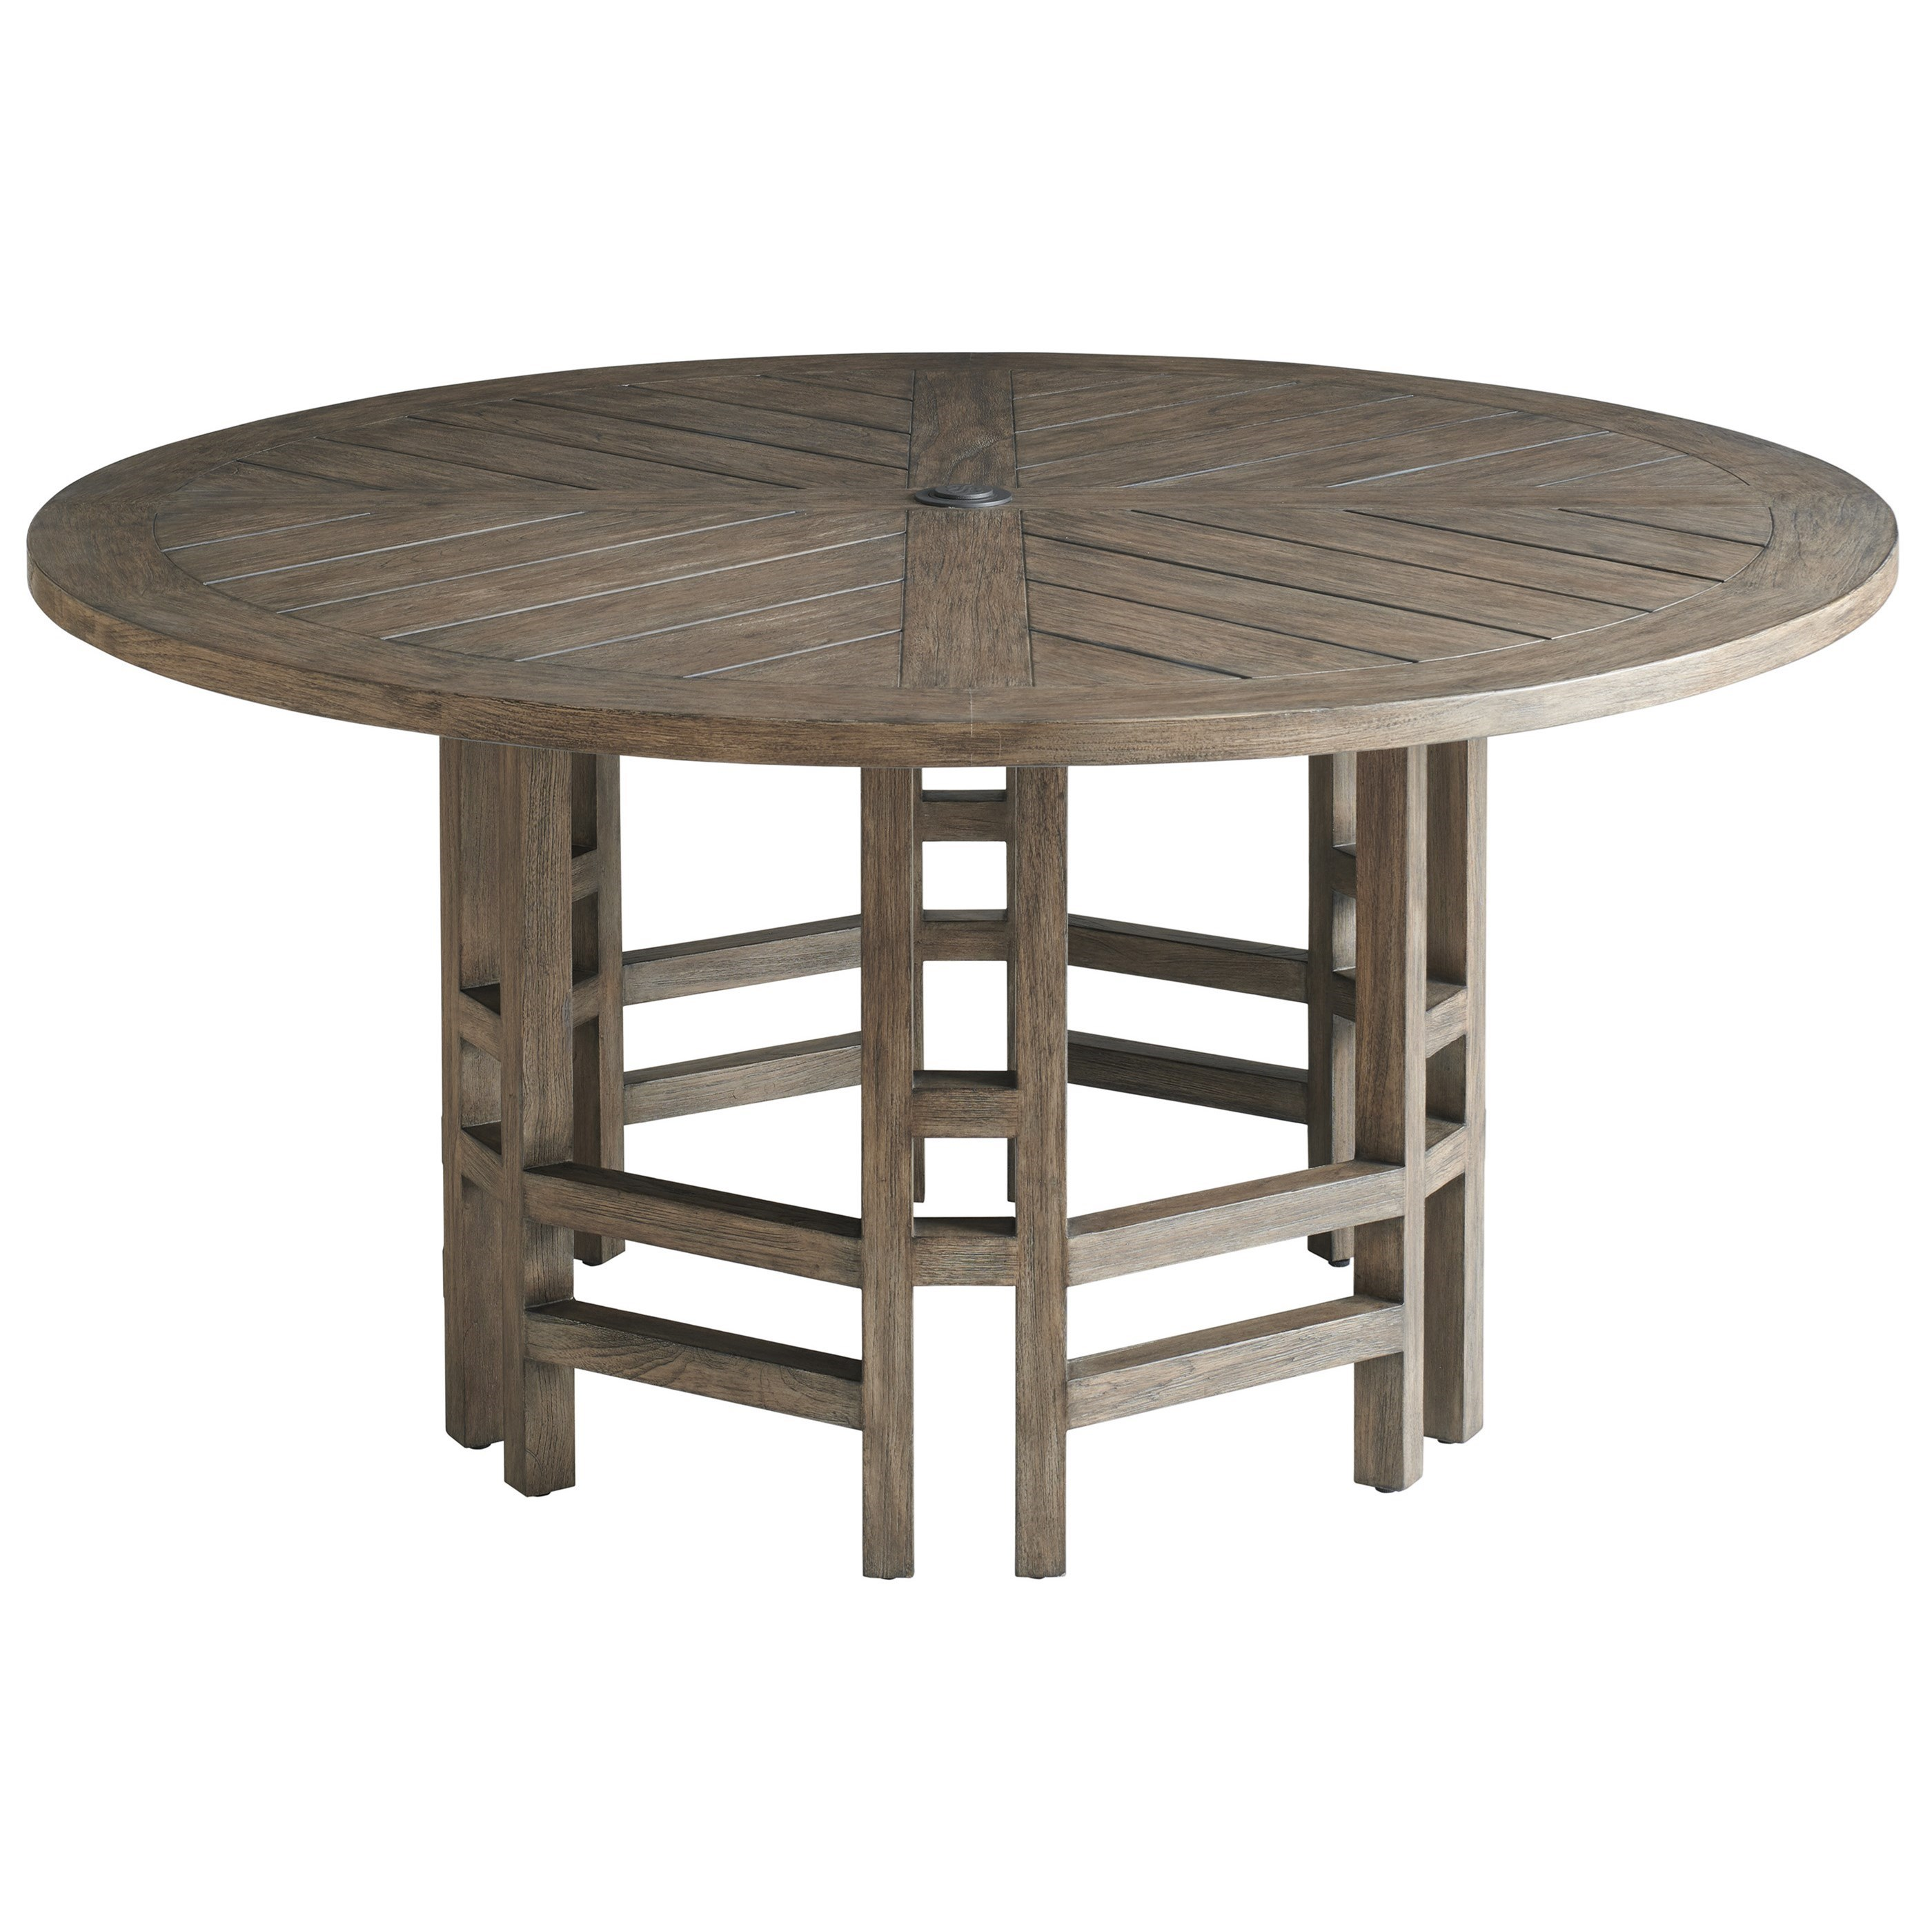 La Jolla Round Dining Table by Tommy Bahama Outdoor Living at Baer's Furniture